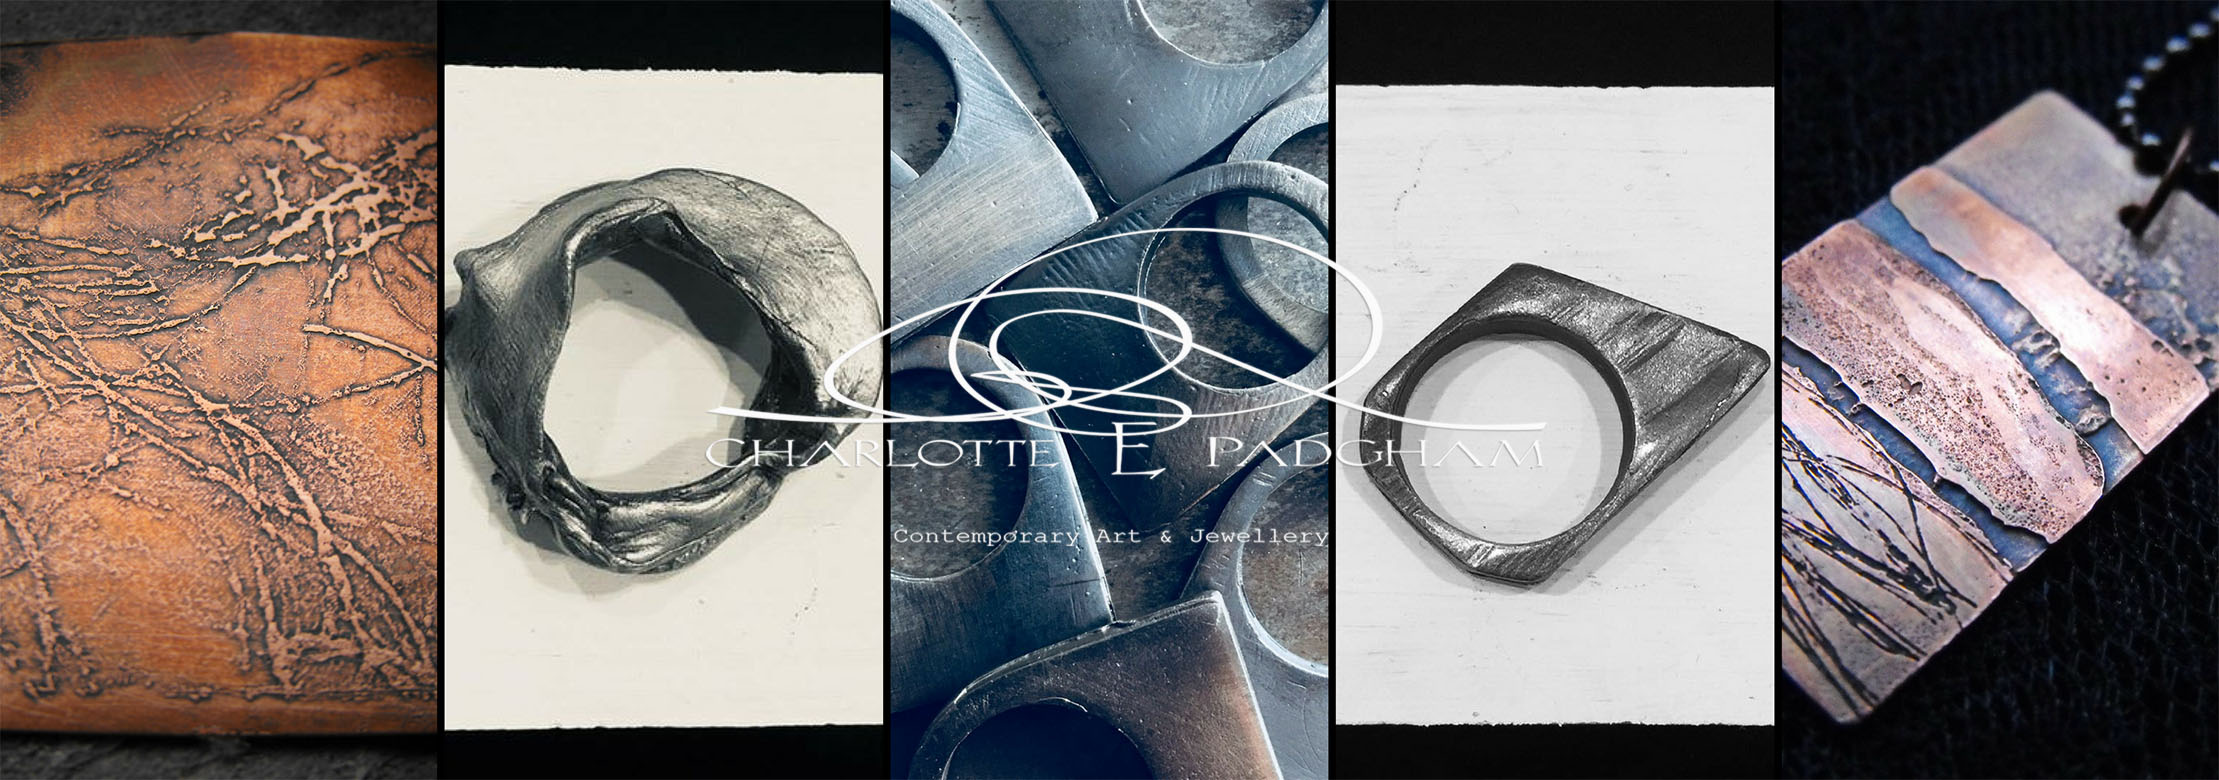 Charlotte E Padgham Contemporary Art & Jewellery banner image